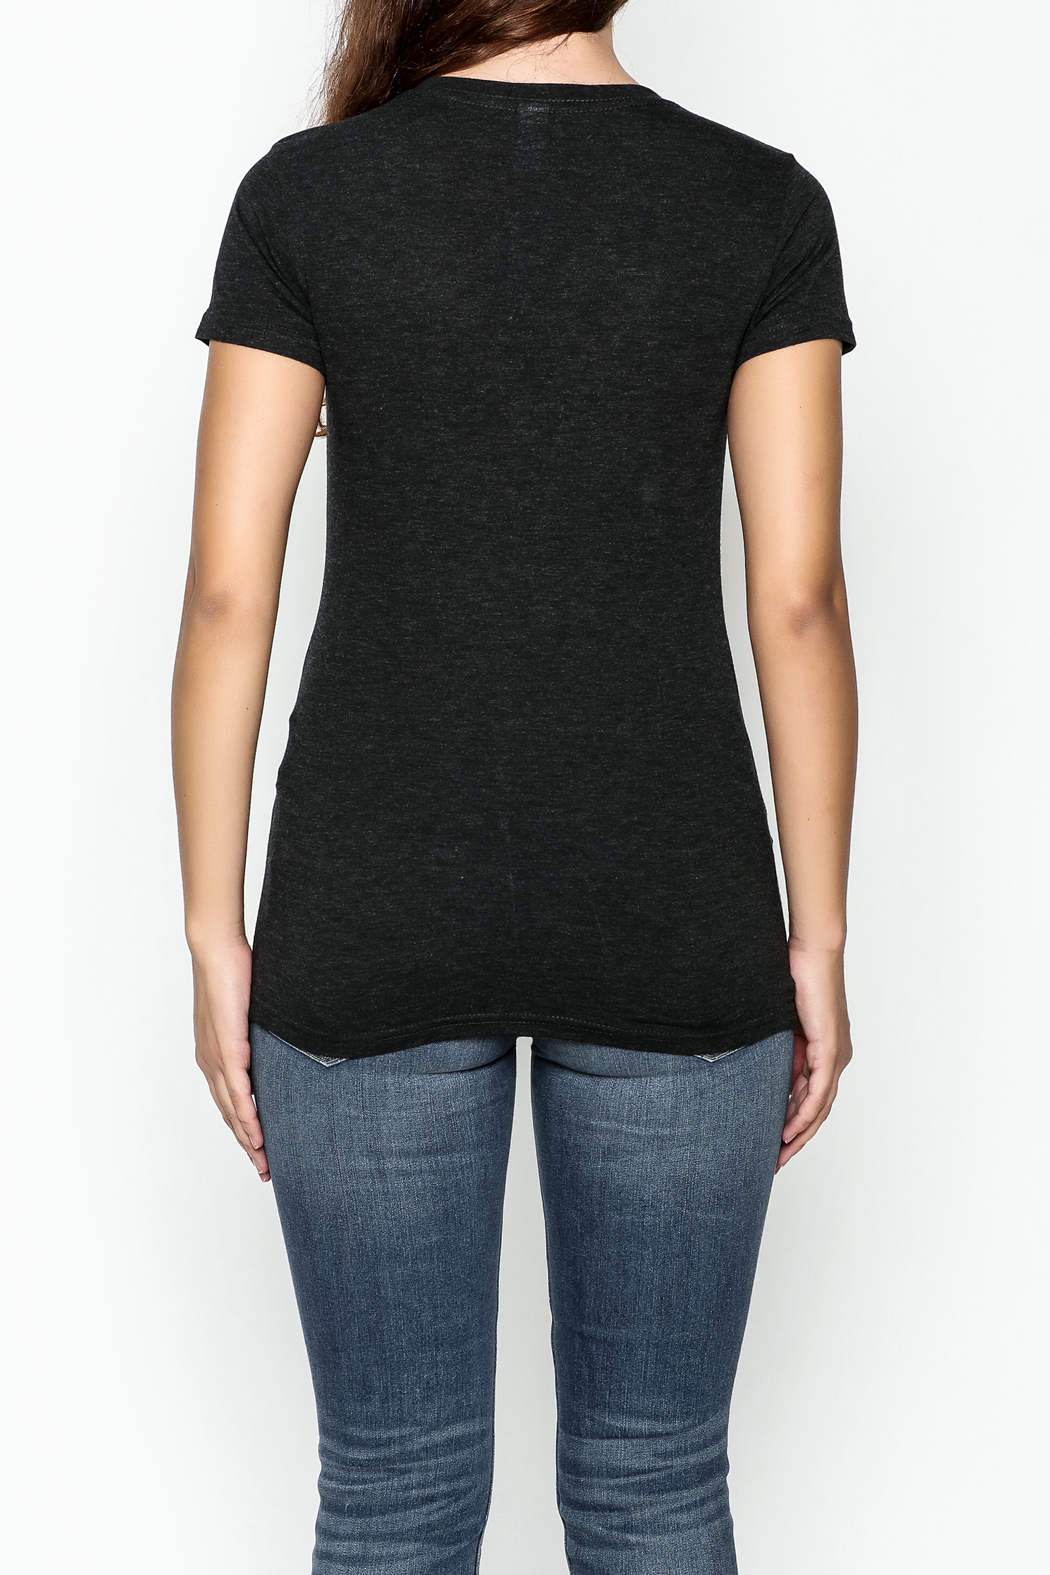 Great To Be Here Cincy V Neck Tee - Back Cropped Image